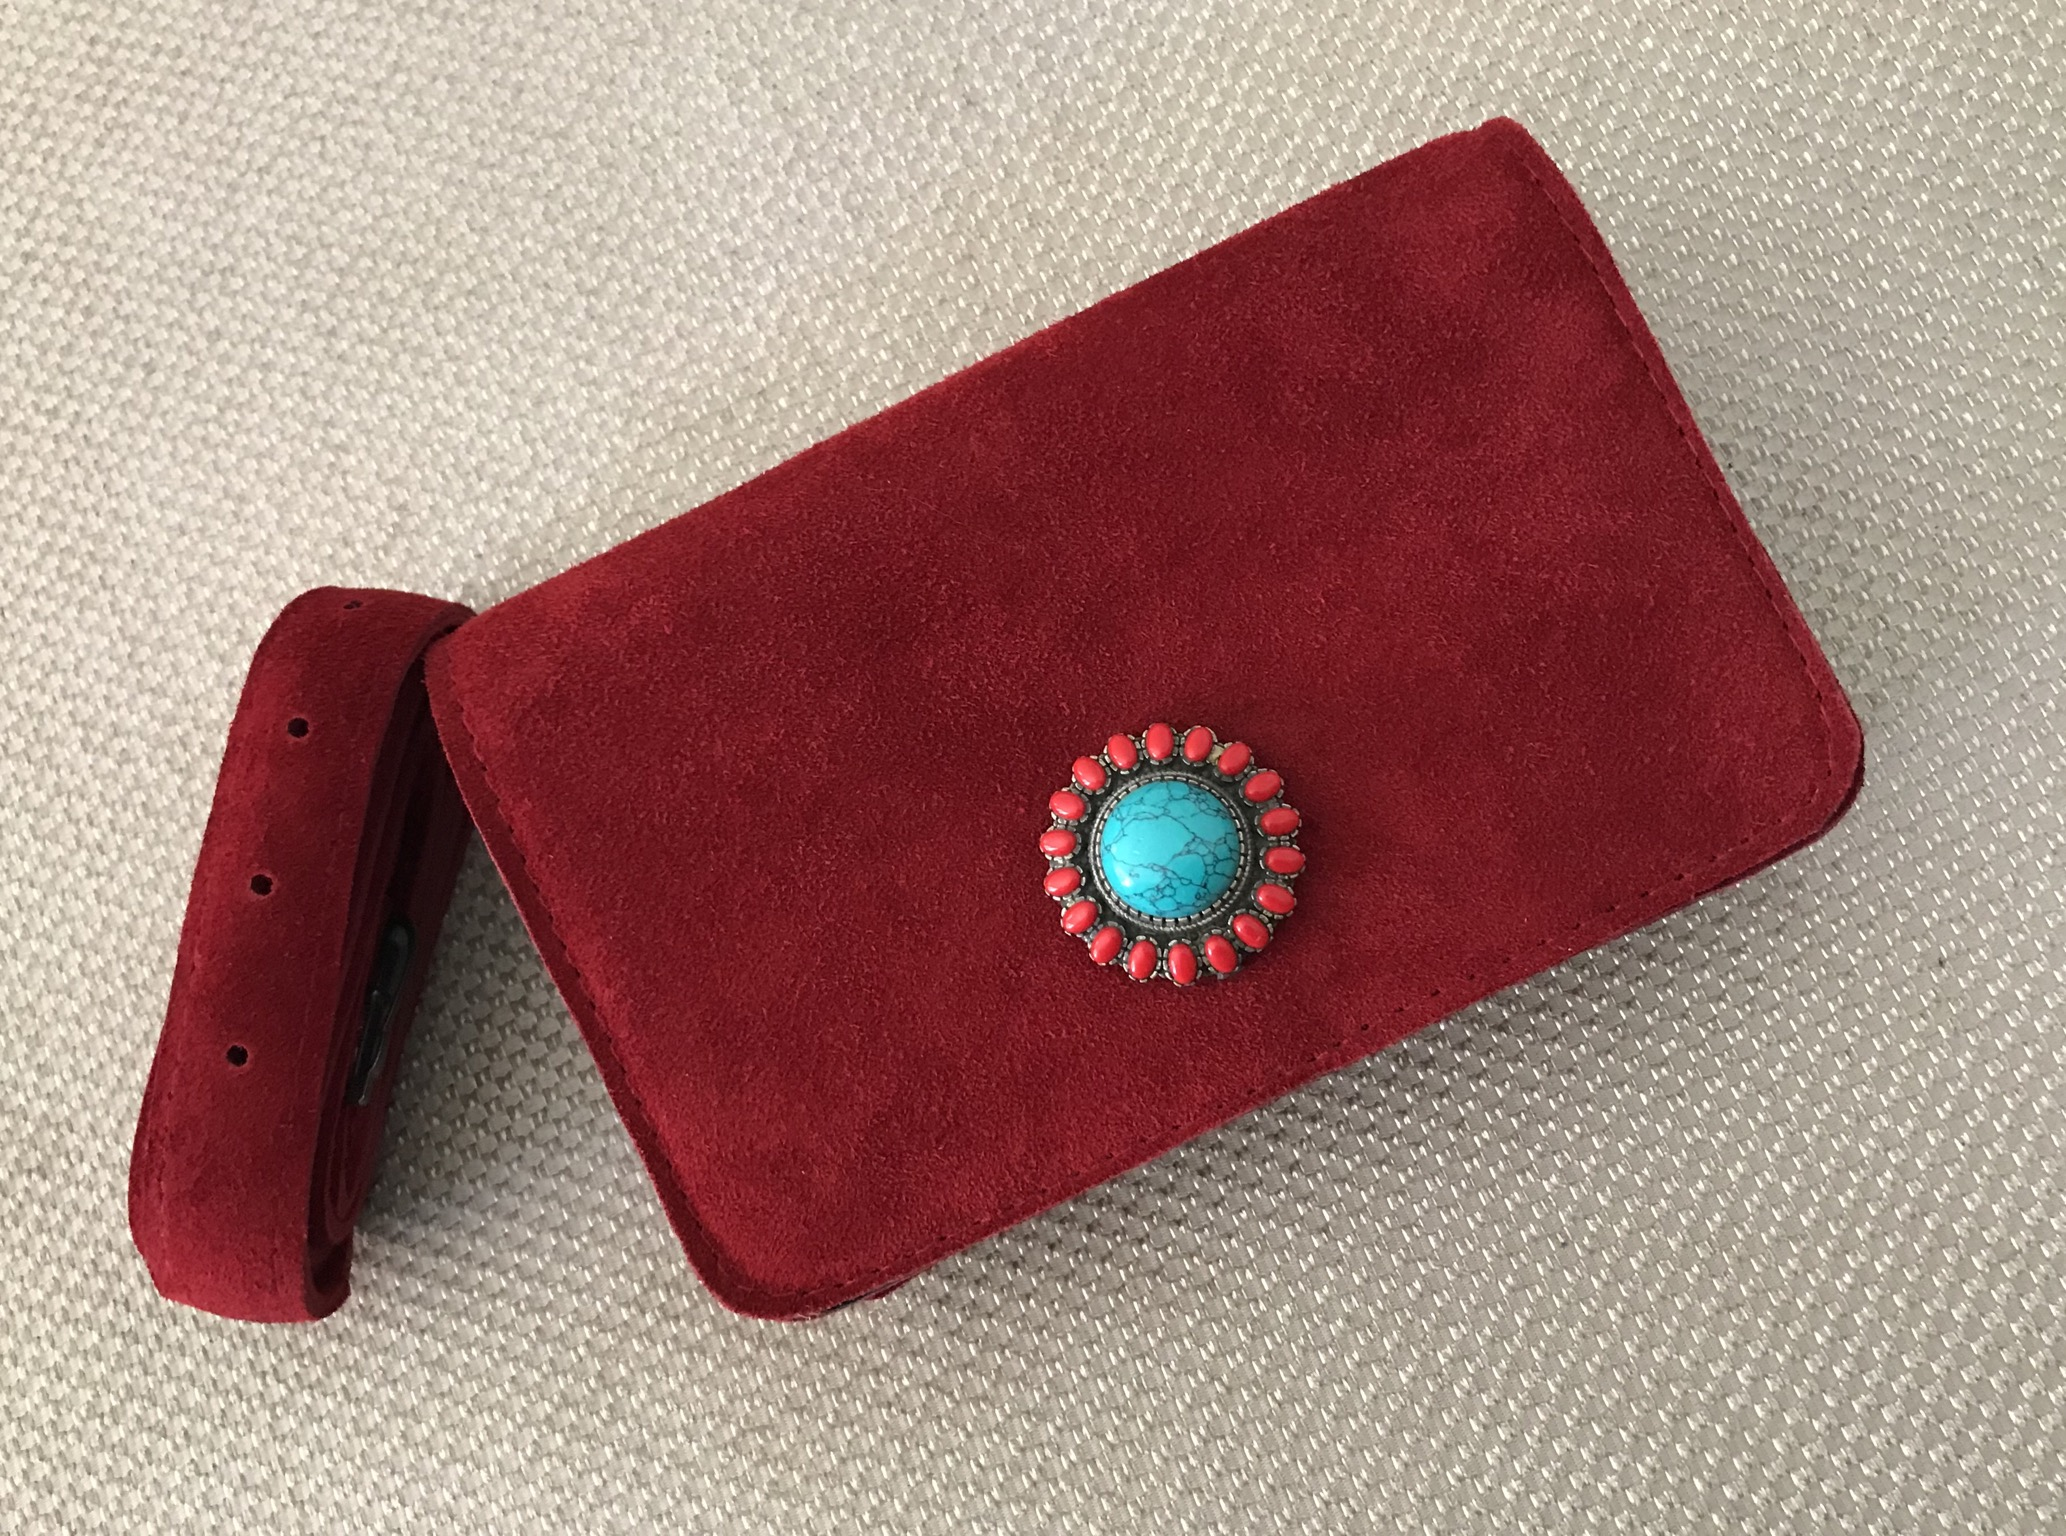 Sac 'Belt Bag' jewelry suede leather red